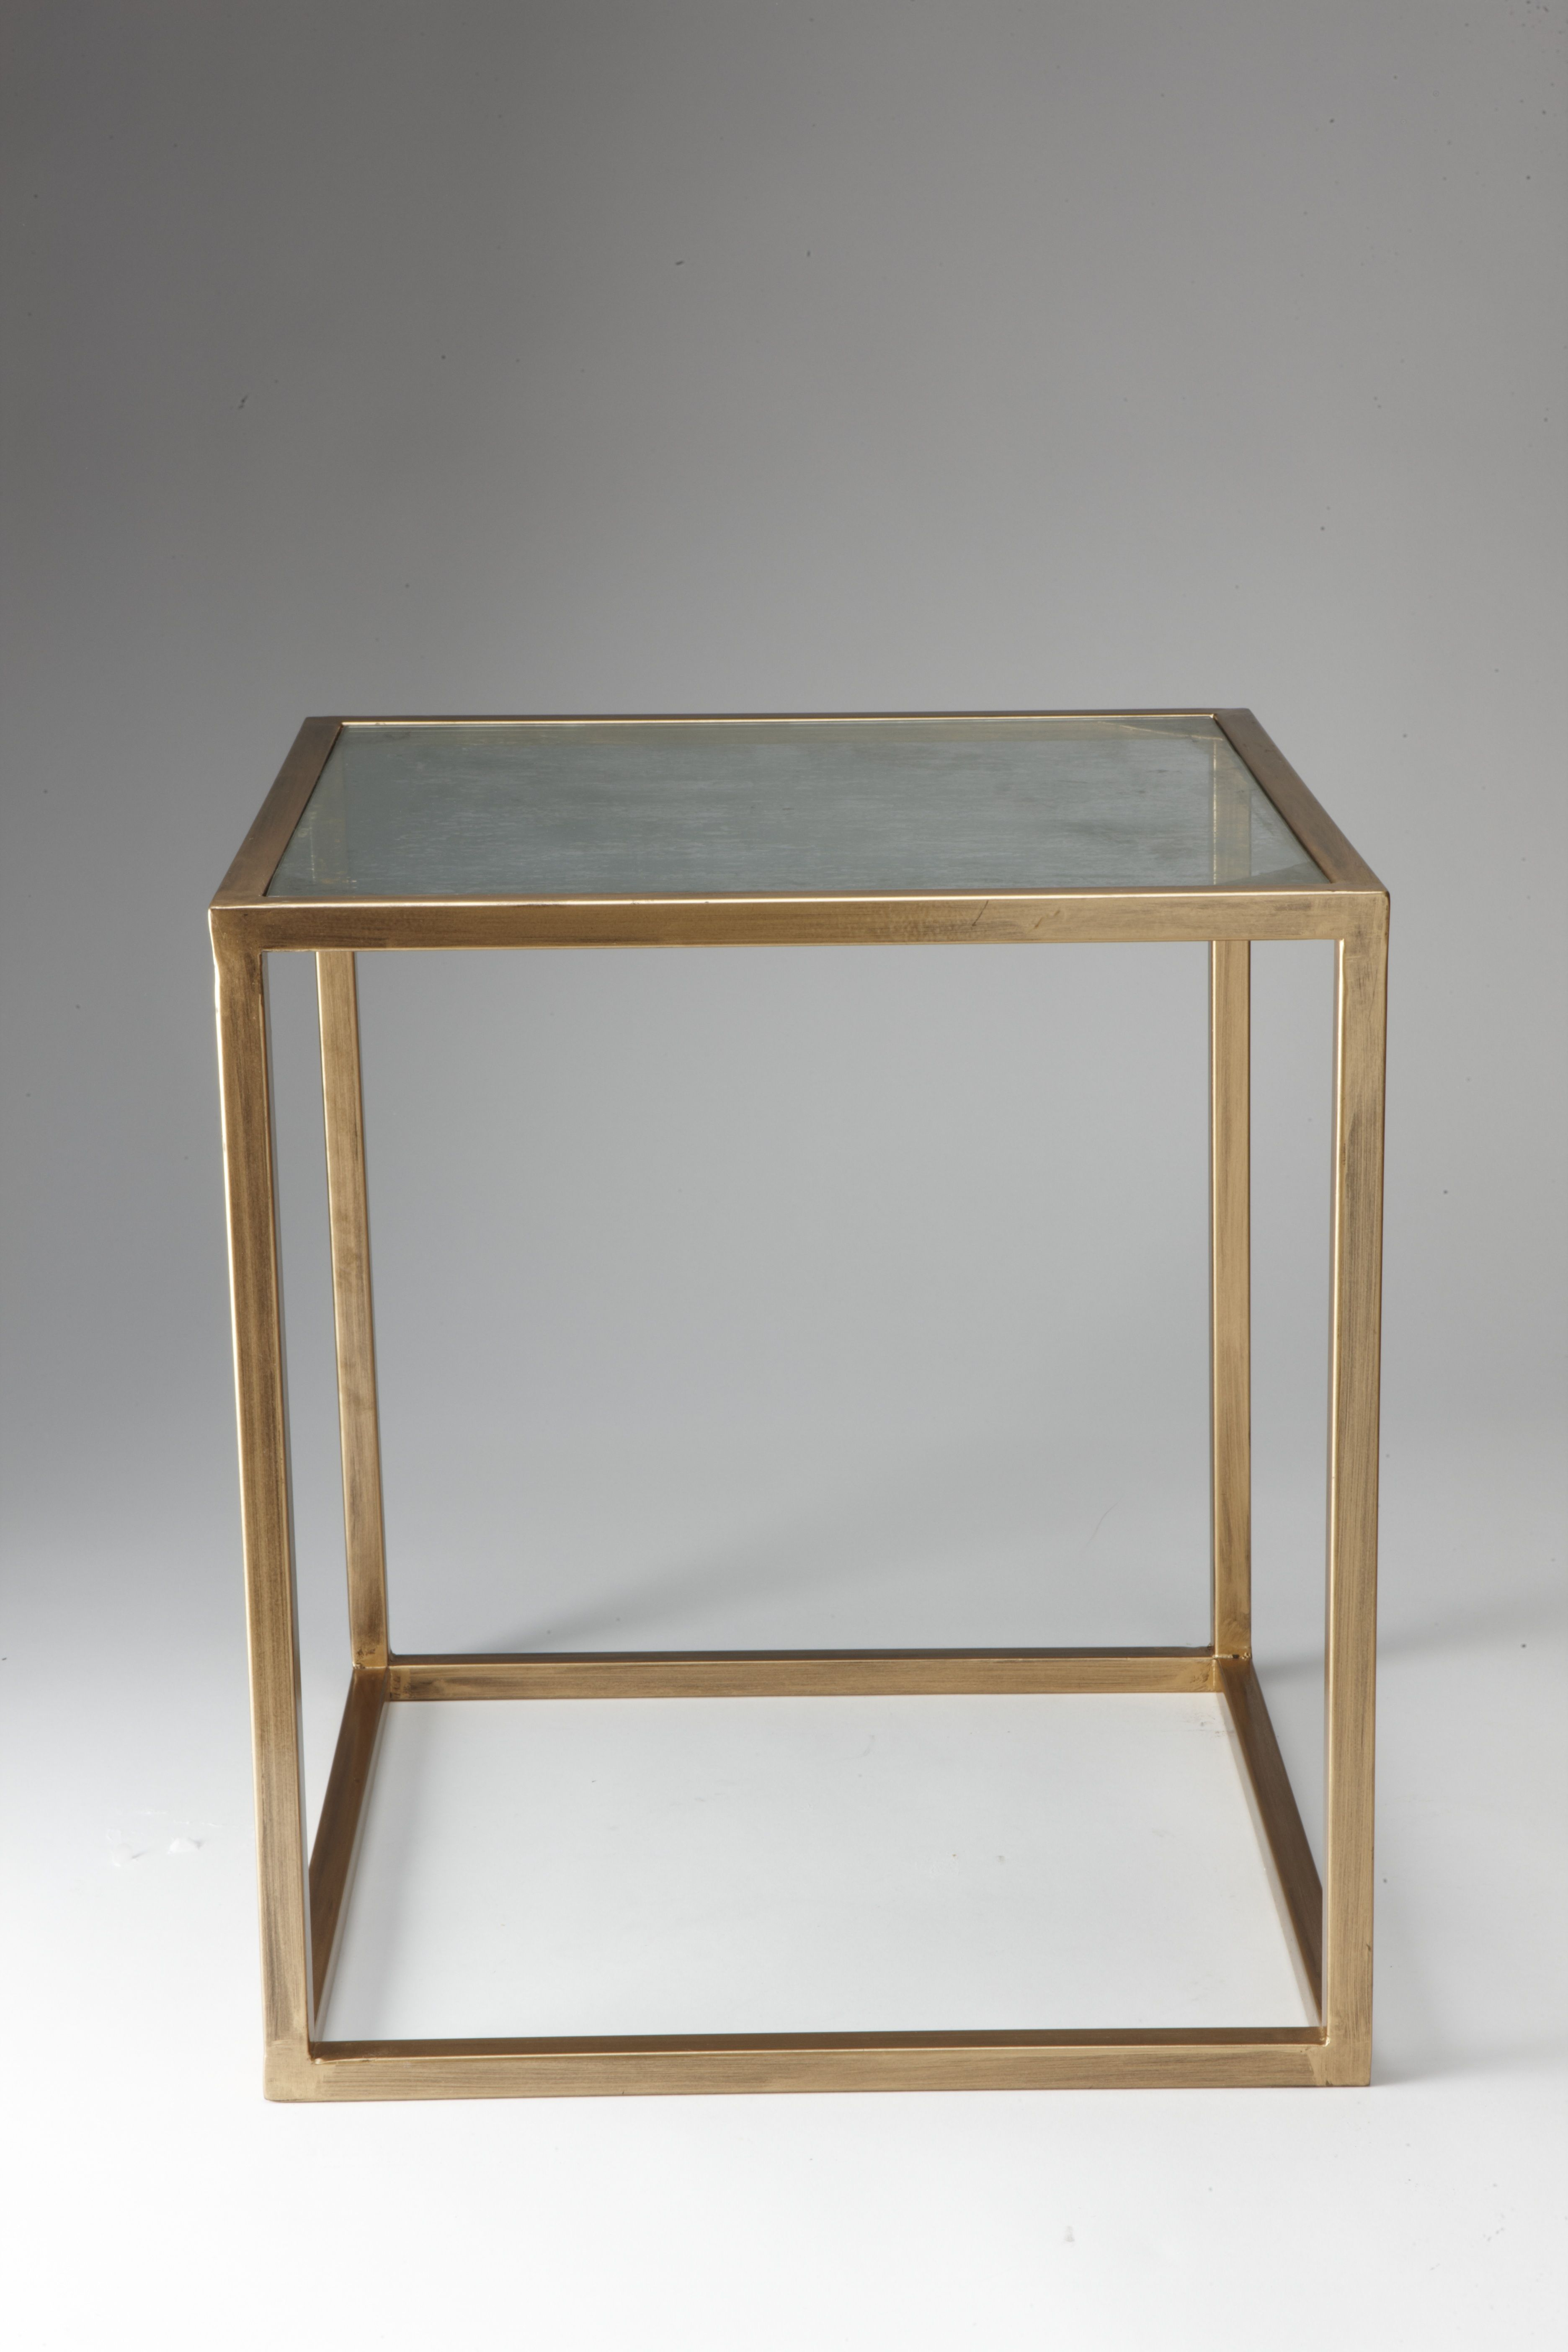 nate berkus accent table gold and antiqued glass hexagon target small half dining decor reclaimed wood conference retro furniture designers side tables white west elm metro floor